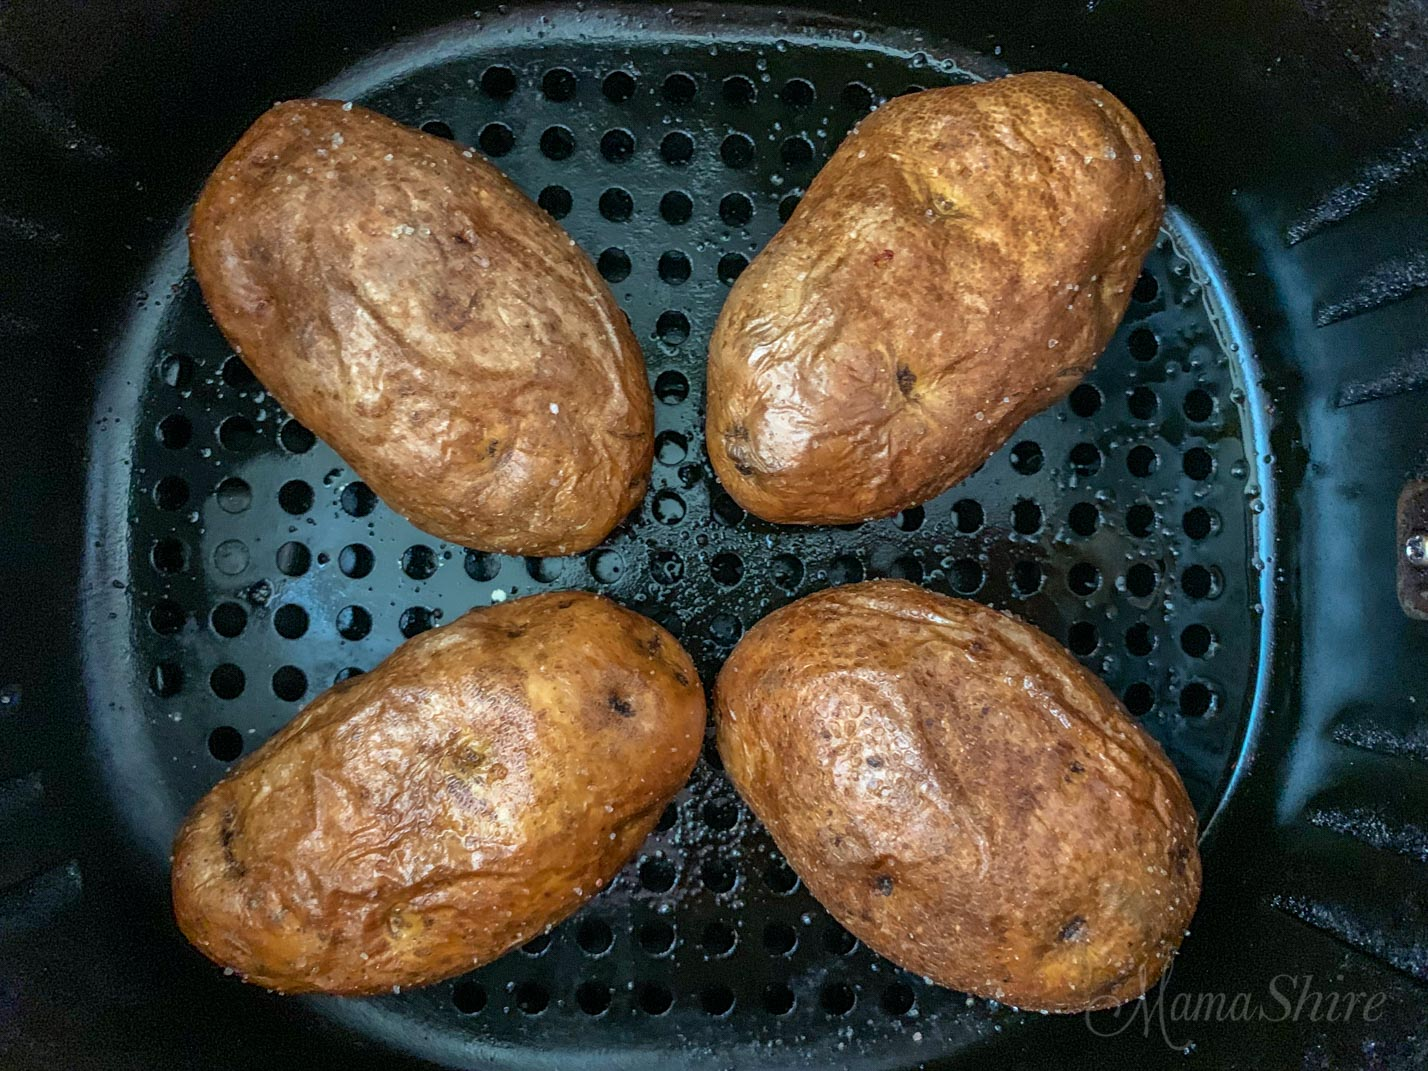 Baked Potatoes in an air fryer basket.